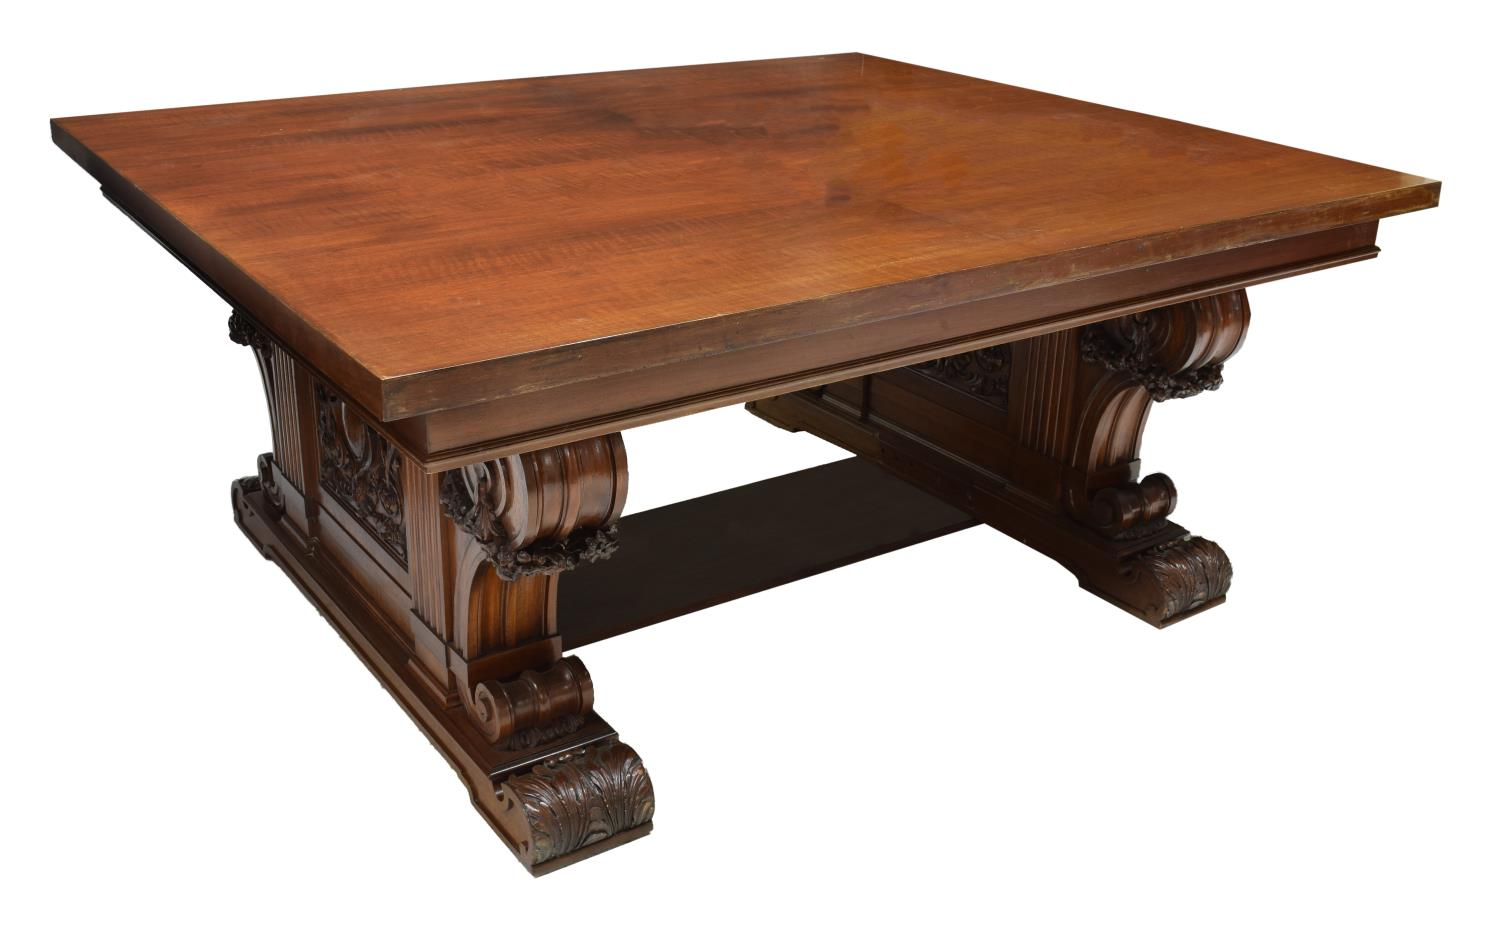 Mahogany dining table luxury estates aucton day two for Transmutation table 85 items